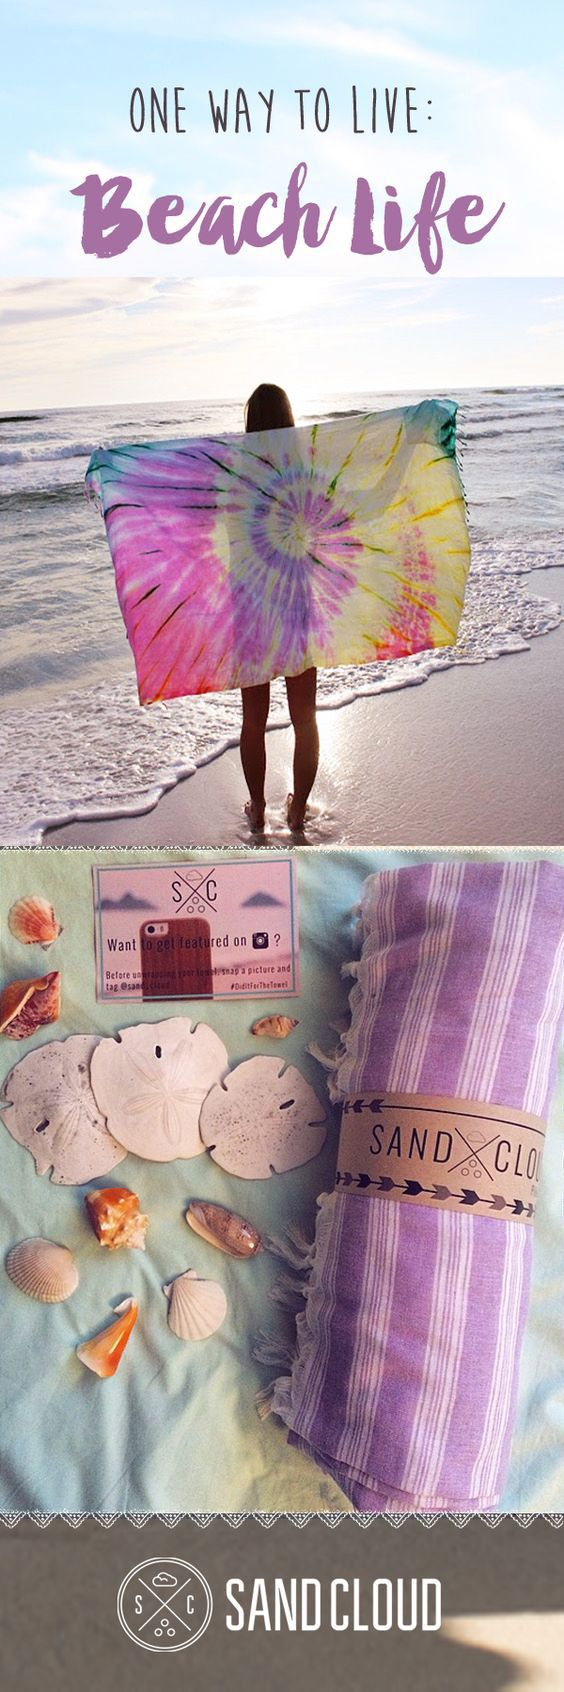 """Omg Do You Live For The Beach? I Am Obsessed With This Towel! I Even Use It As A Blanket, It's so soft! <3 Everyone Is Always Asking Where I Got It So I Figured I'd Share! Shoutout to My Mate For Taking This Awesome Pic of Me!     """"Discover the latest beach styles photographed on some of the most beautiful beaches in the world!"""""""